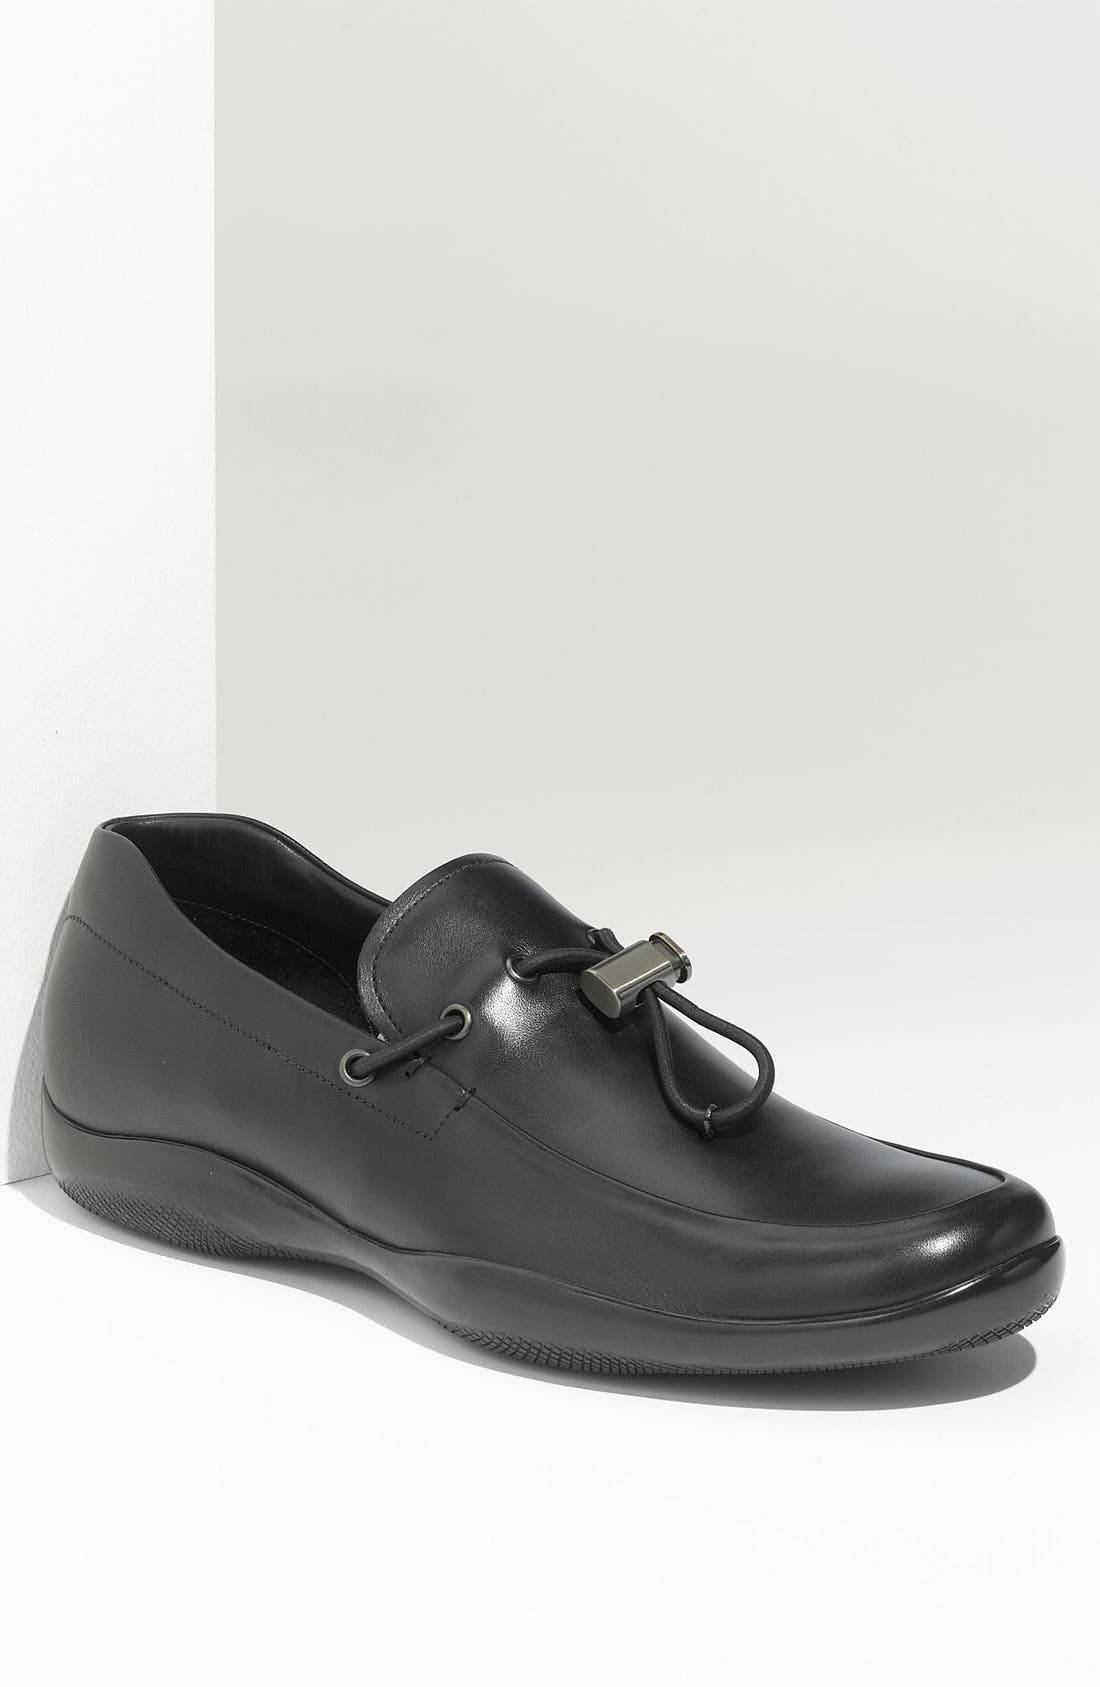 Alternate Image 1 Selected - Prada Leather Loafer